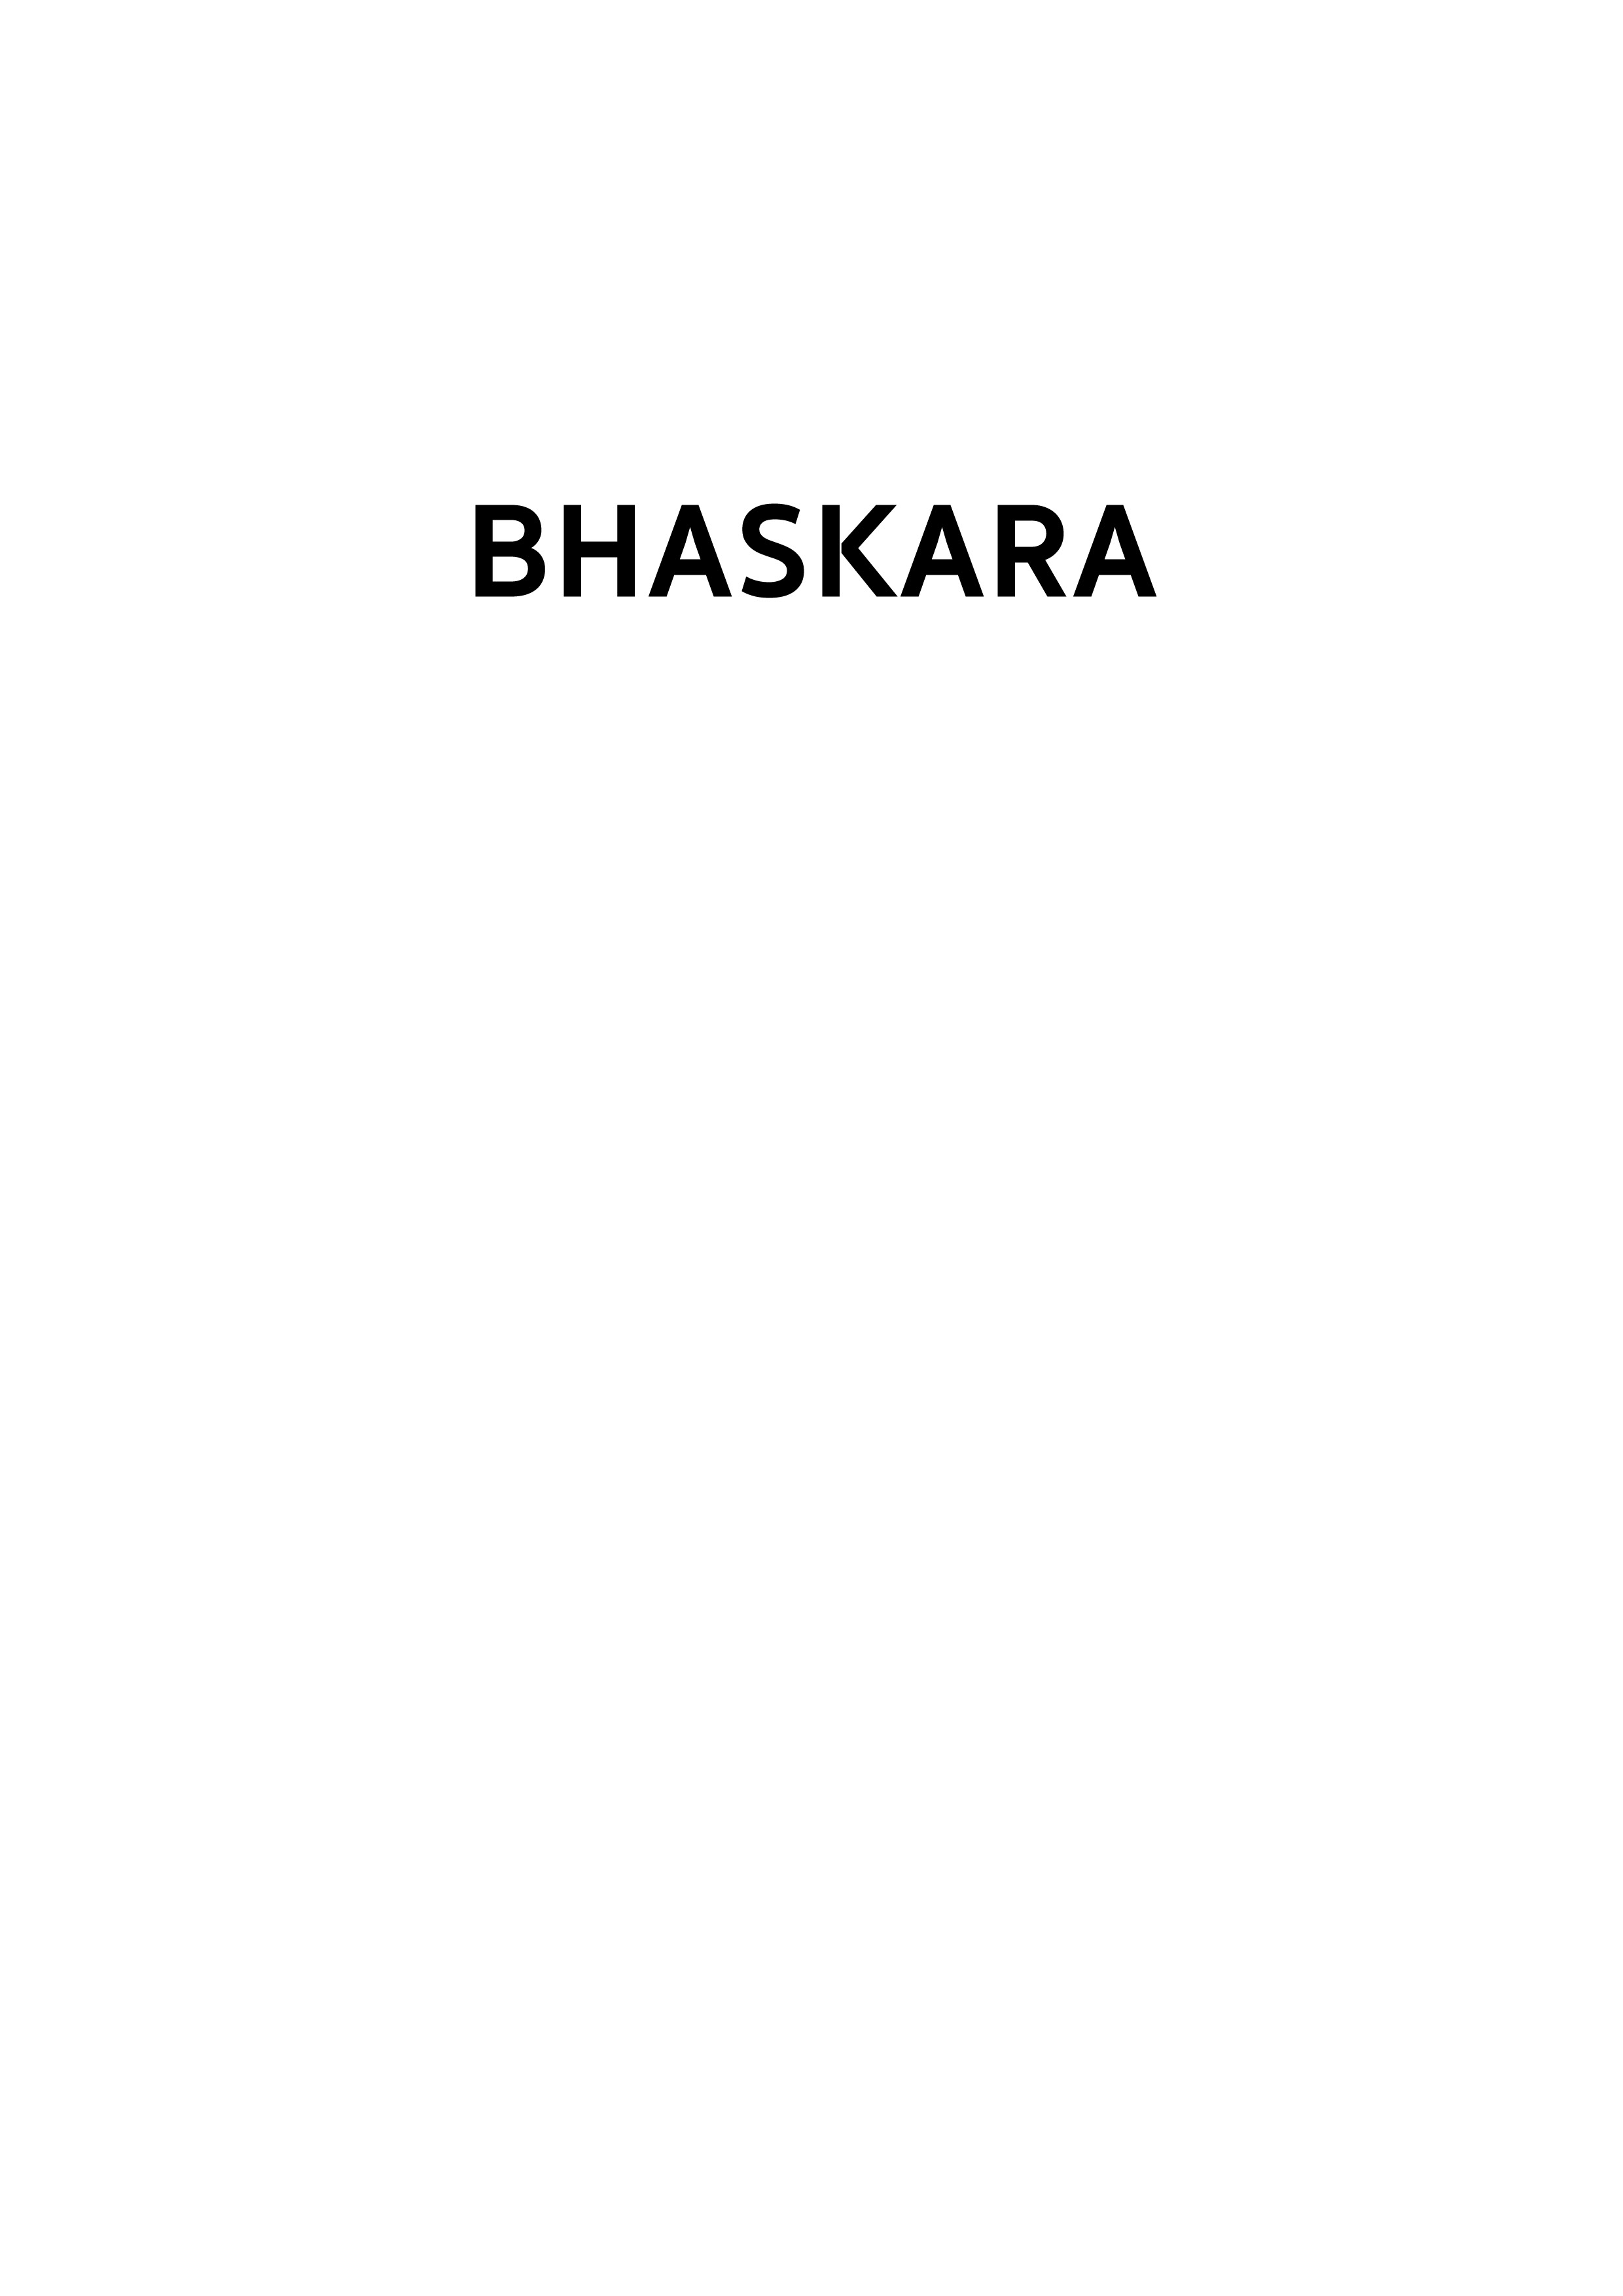 Association - Association BHASKARA